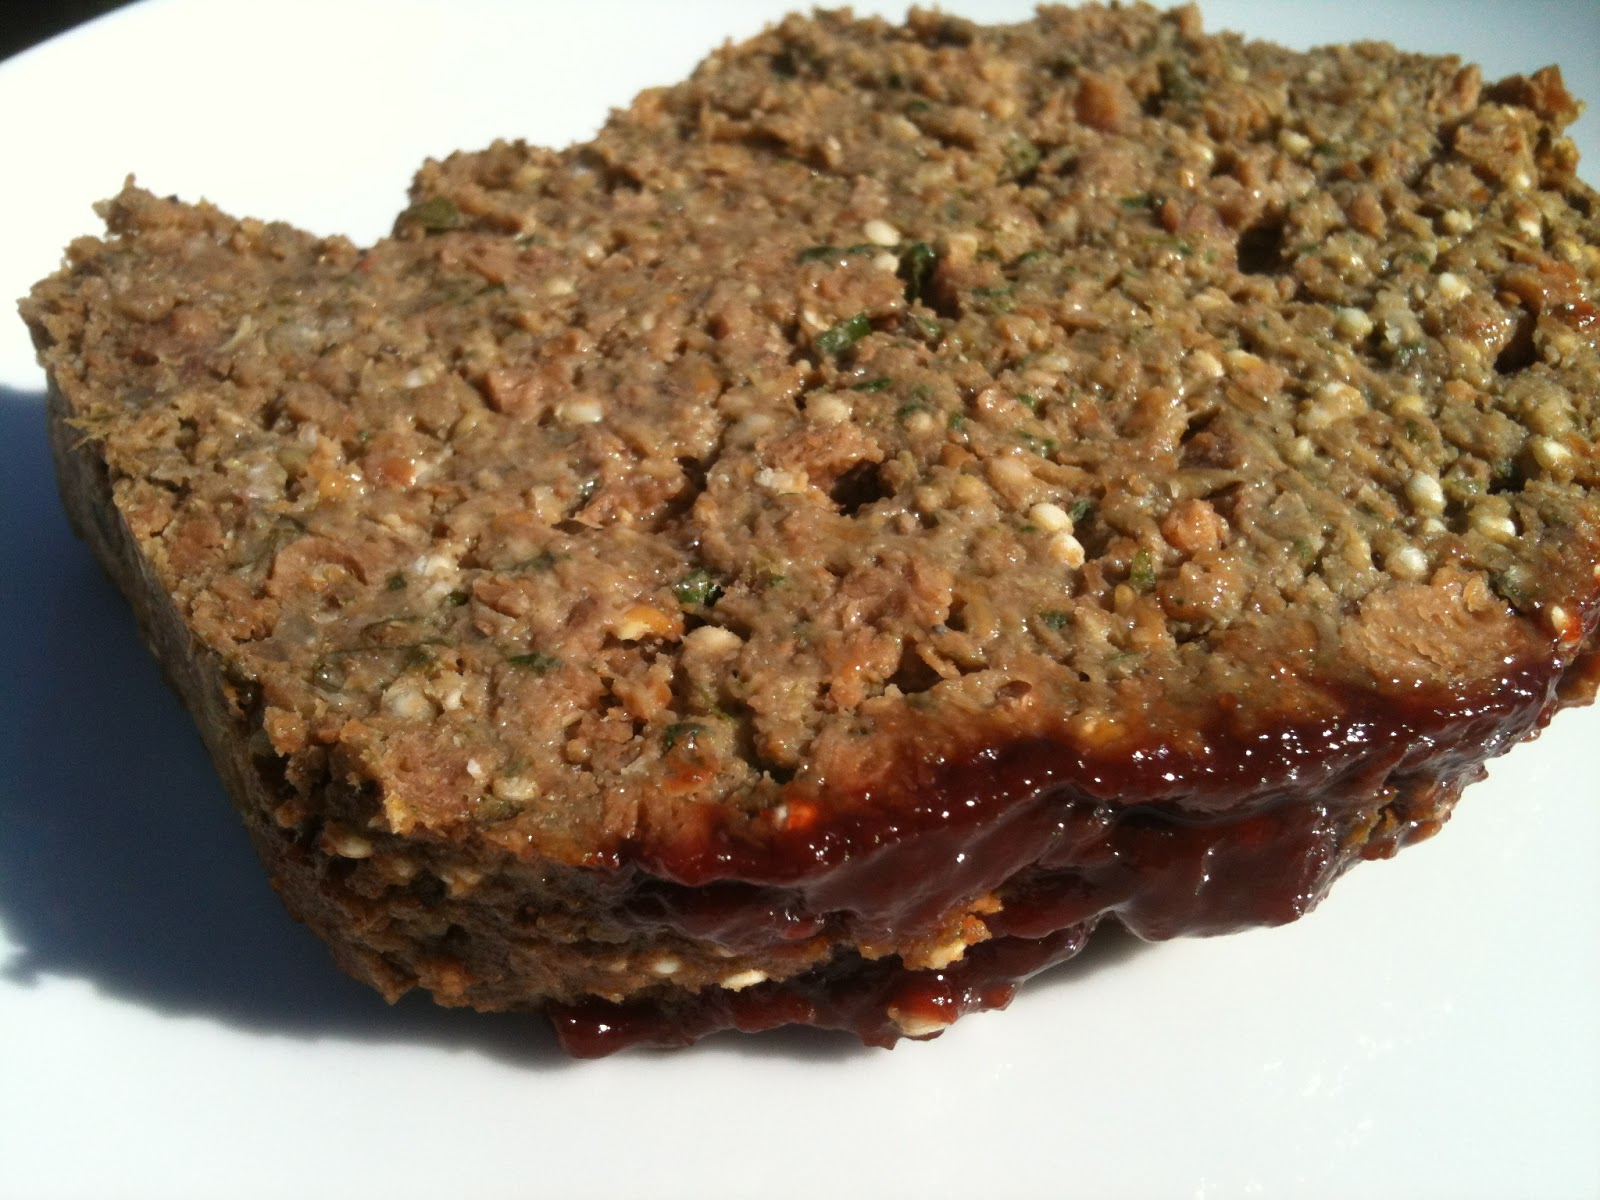 Vegan Spinach, Quinoa and lentil loaf (don't tell the meat-eaters ...